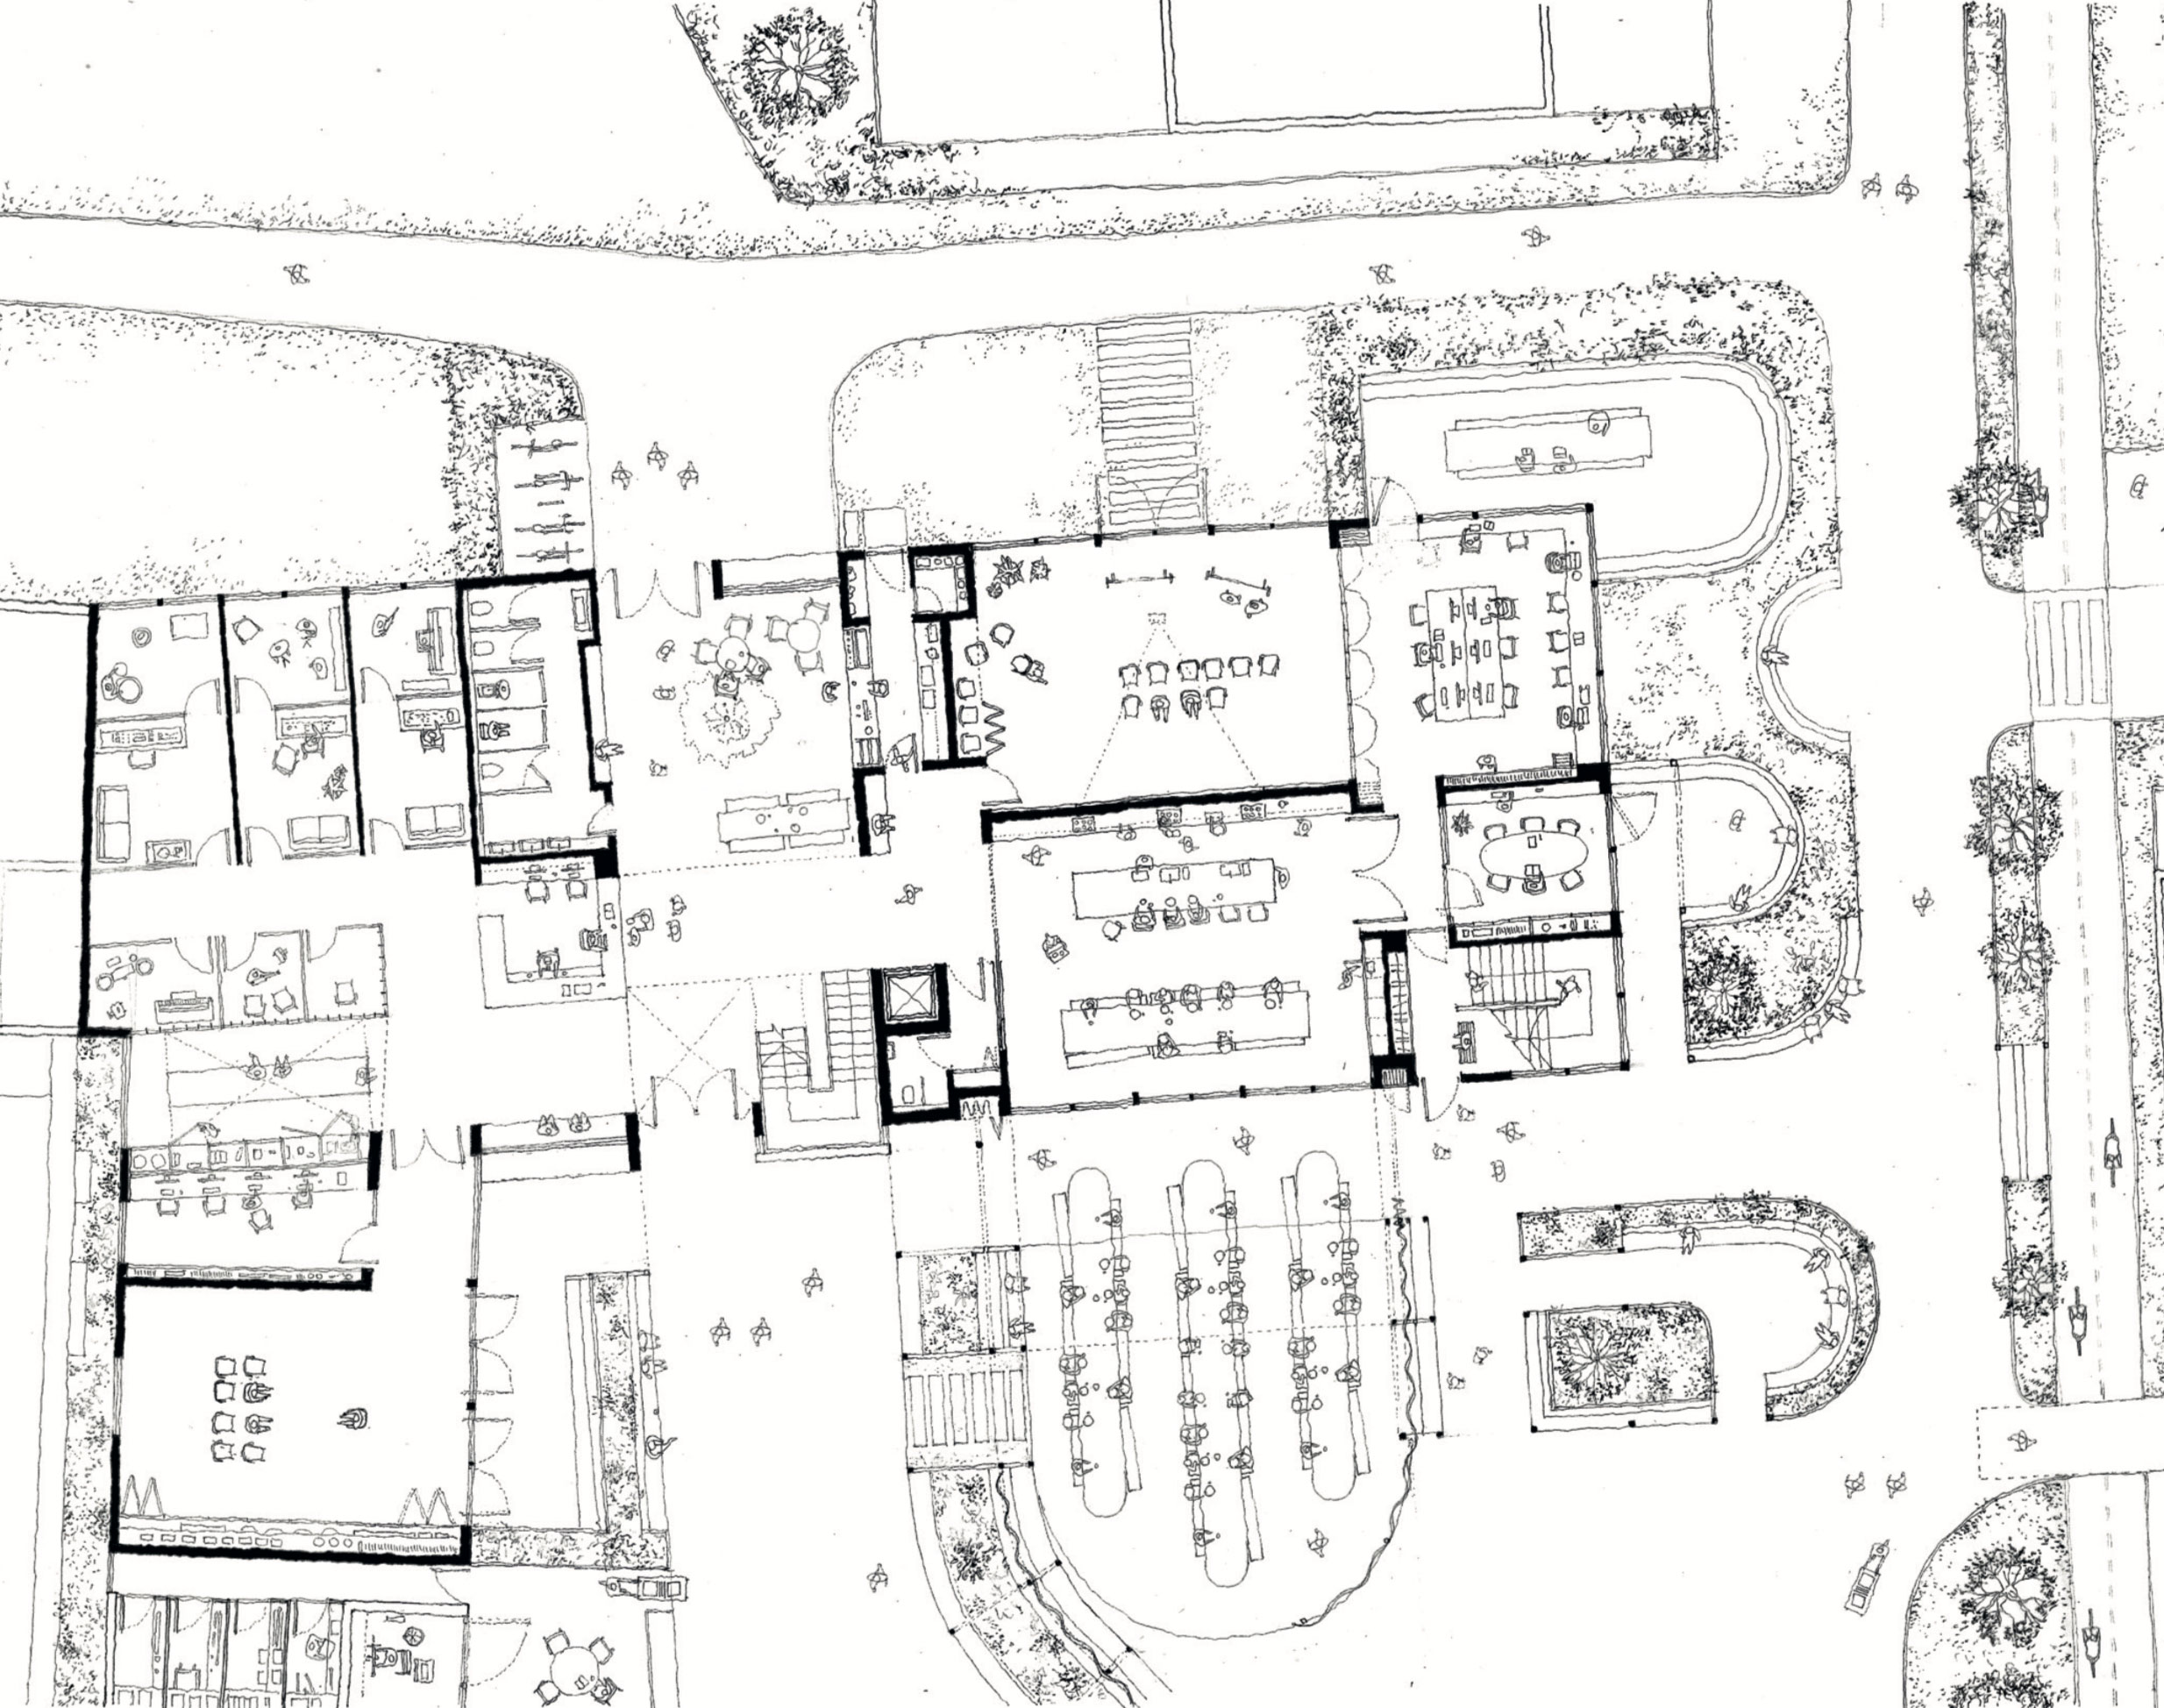 Proposed ground floor plan showing entrance atrium with community rooms to the right and music school  to the left.